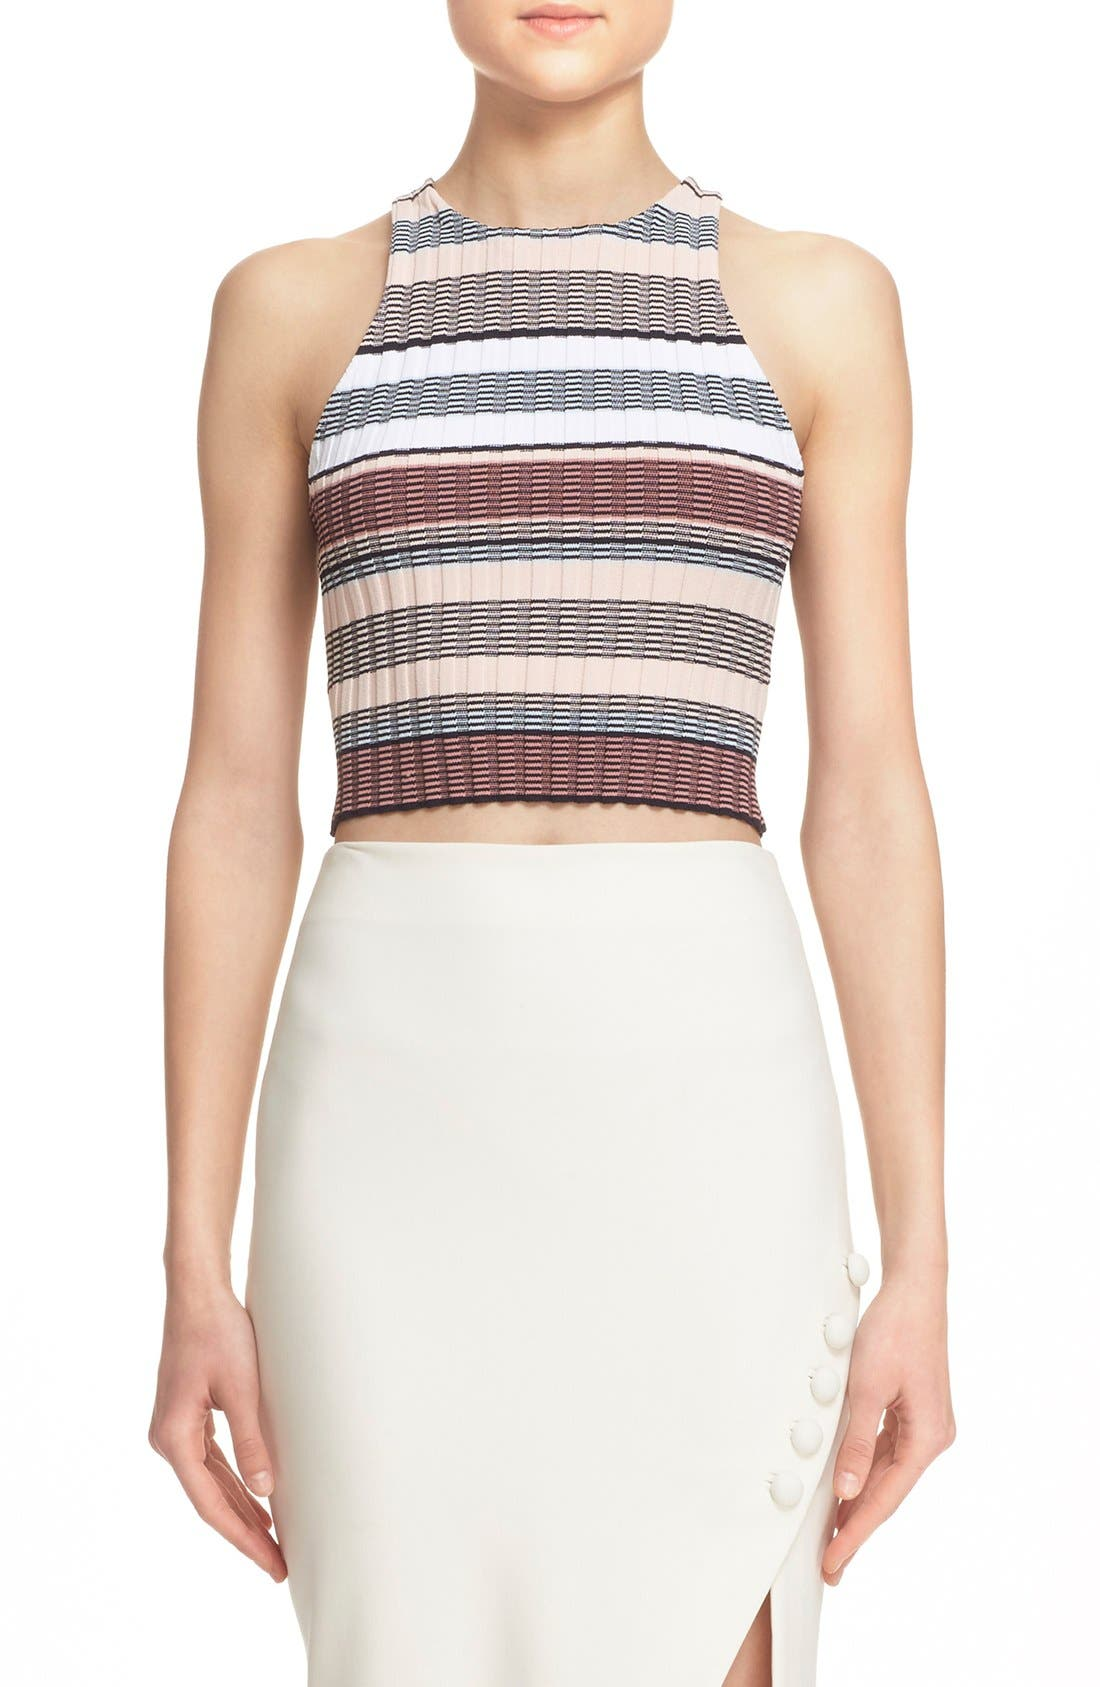 Main Image - Elizabeth and James Stripe Racerback Crop Top